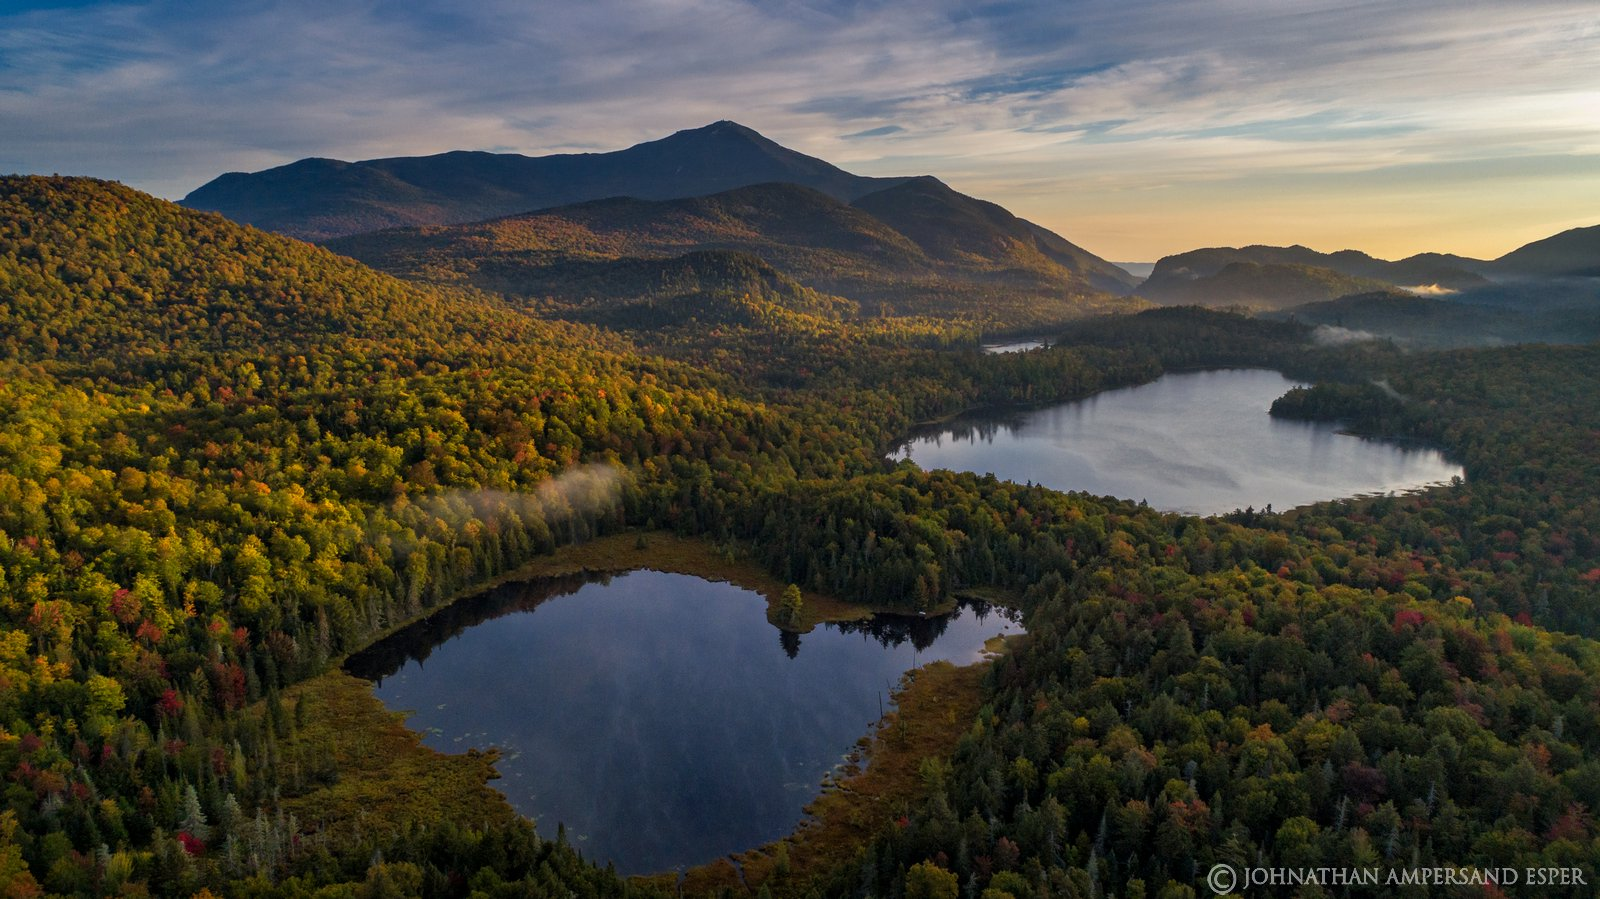 Connery Pond,Whiteface Mt,Whiteface,drone,aerial,2019,autumn,morning,fog,sunrise,Adirondacks,Adirondack Park,landscape,photography,Johnathan Esper,ponds,lakes,Wilmington Notch, photo